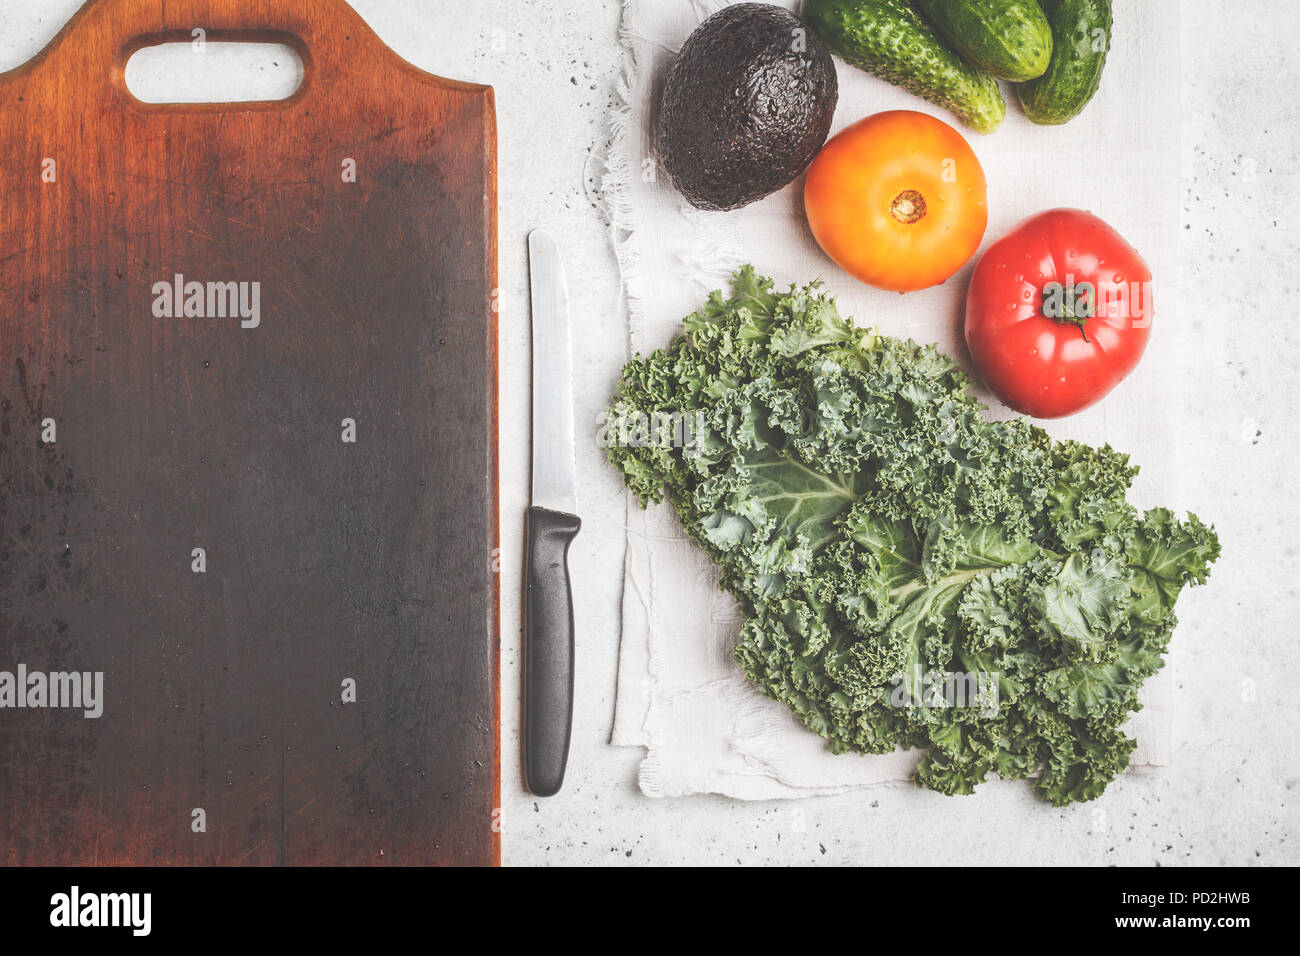 Ingredients for a healthy salad on a white table, top view. Cooking of vegetable salad from tomatoes, cucumbers, avocado and kale. Healthy vegan food  - Stock Image